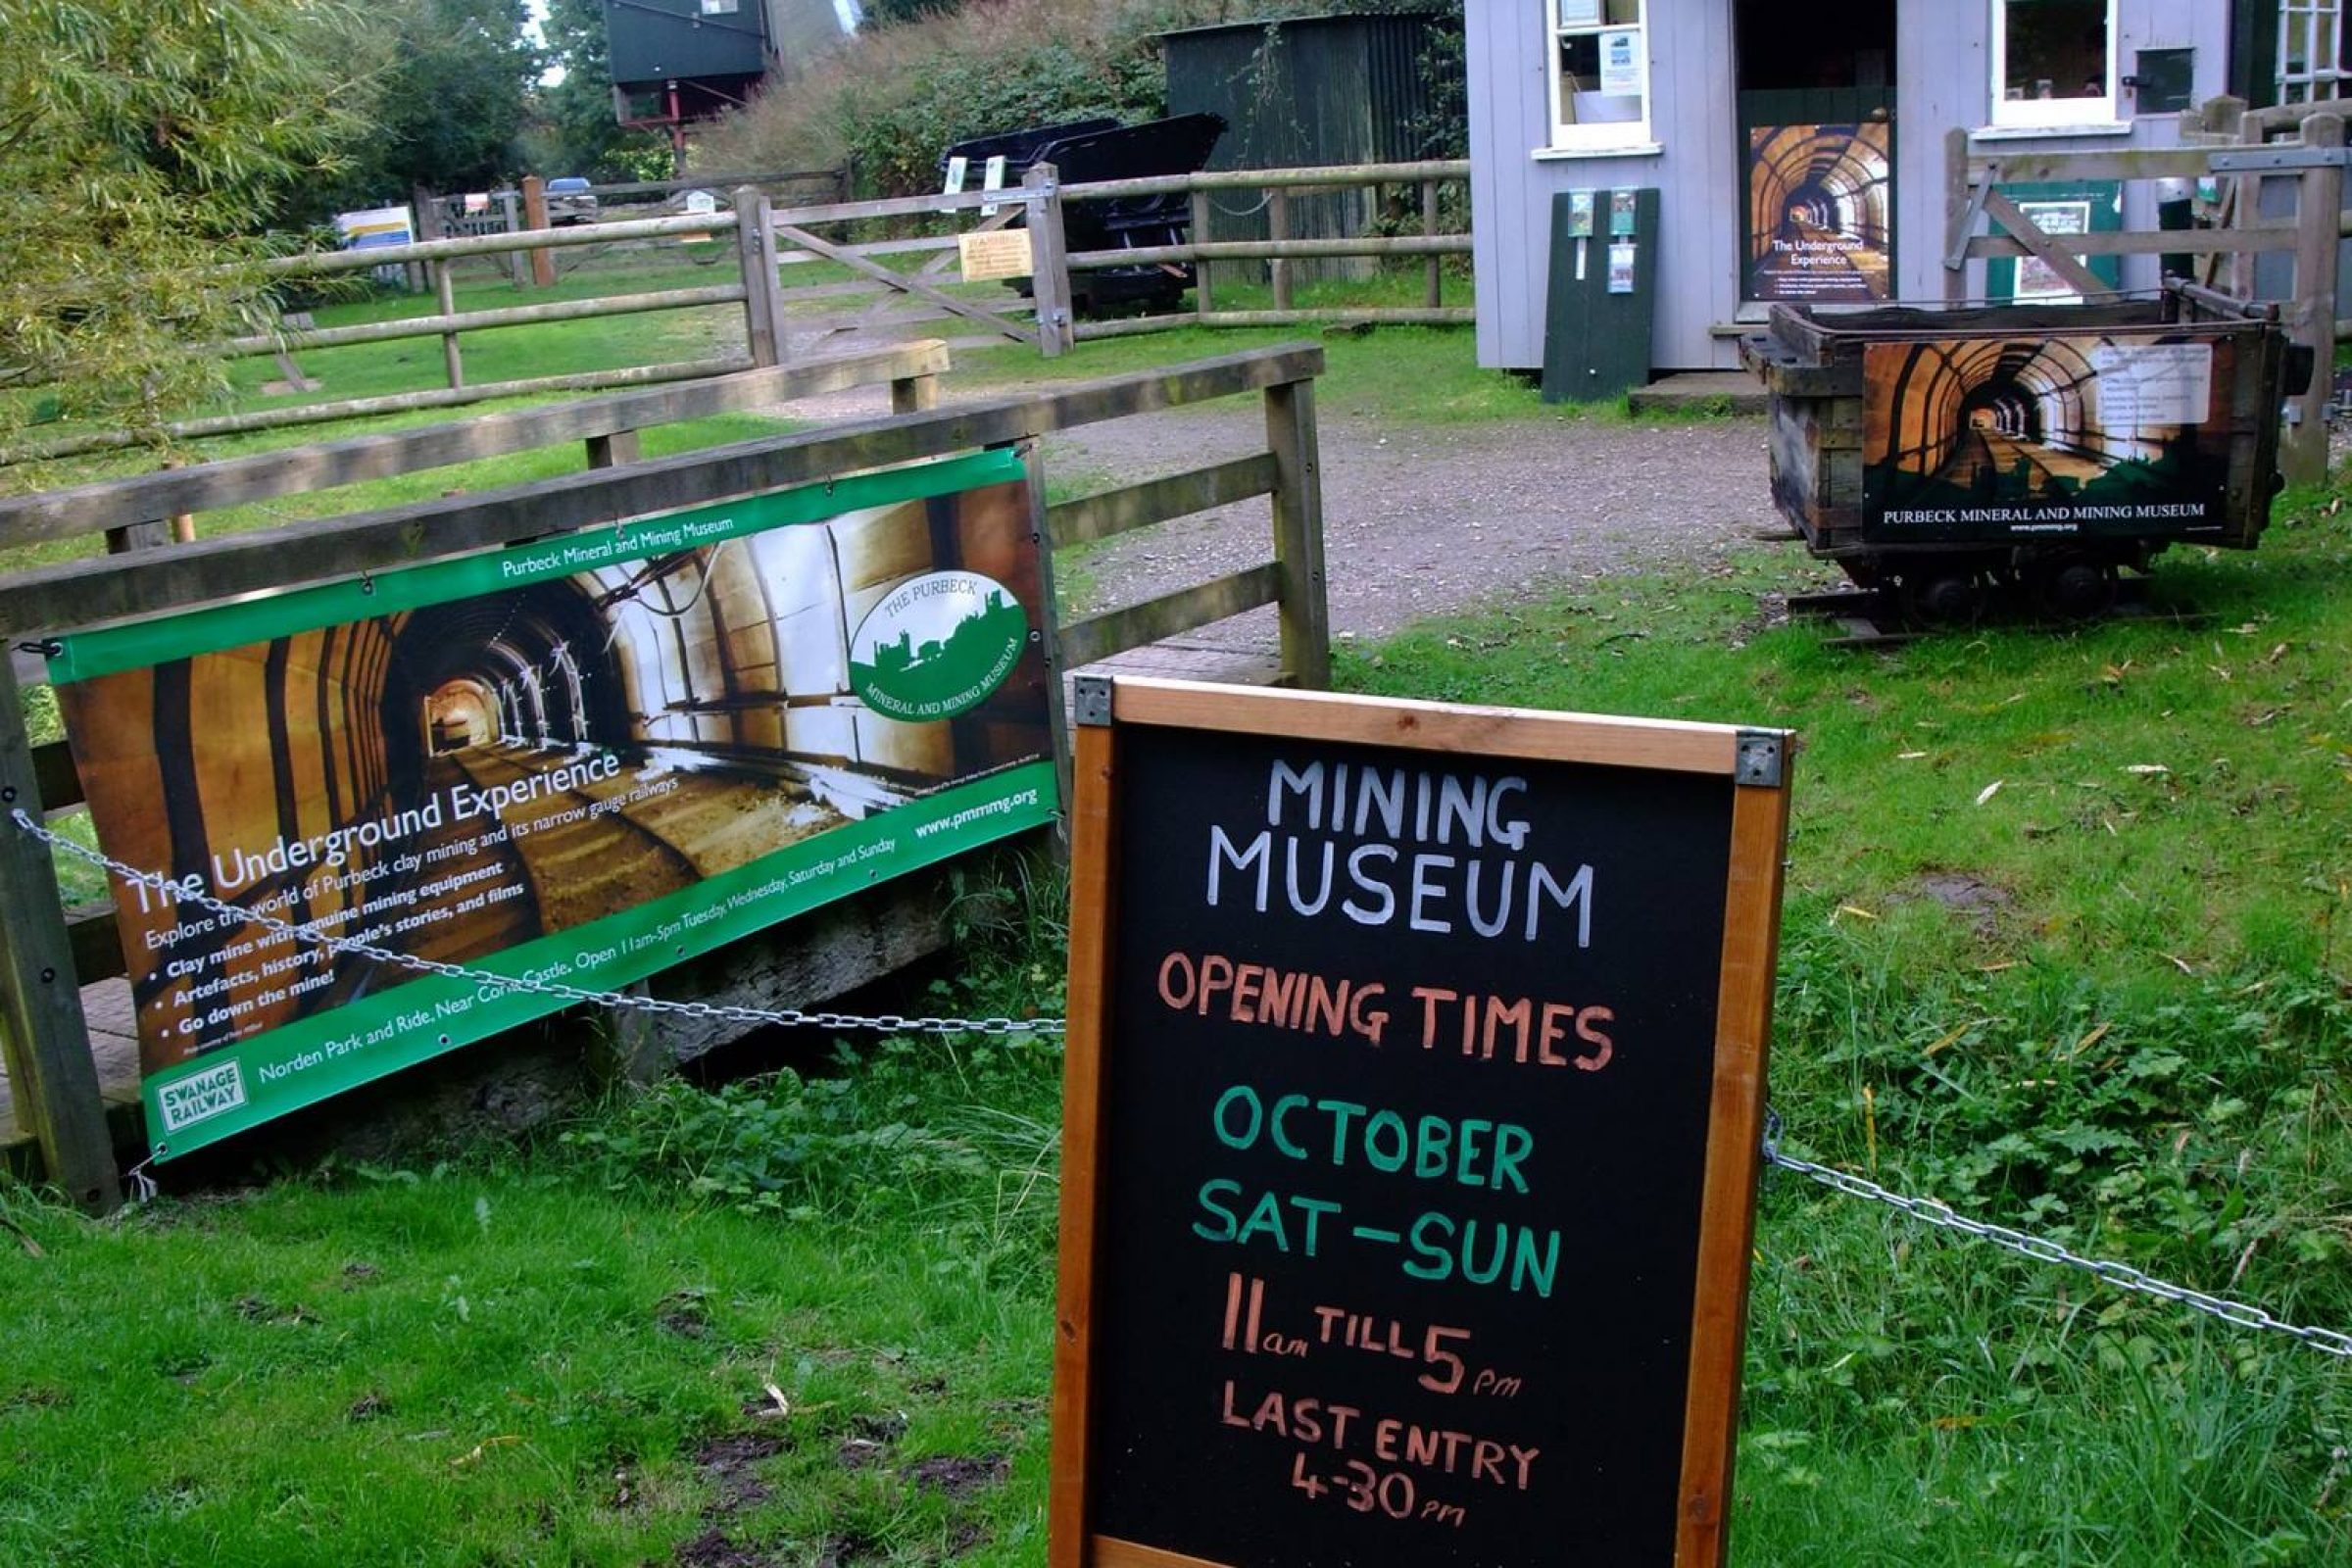 Purbeck Mineral & Mining Museum